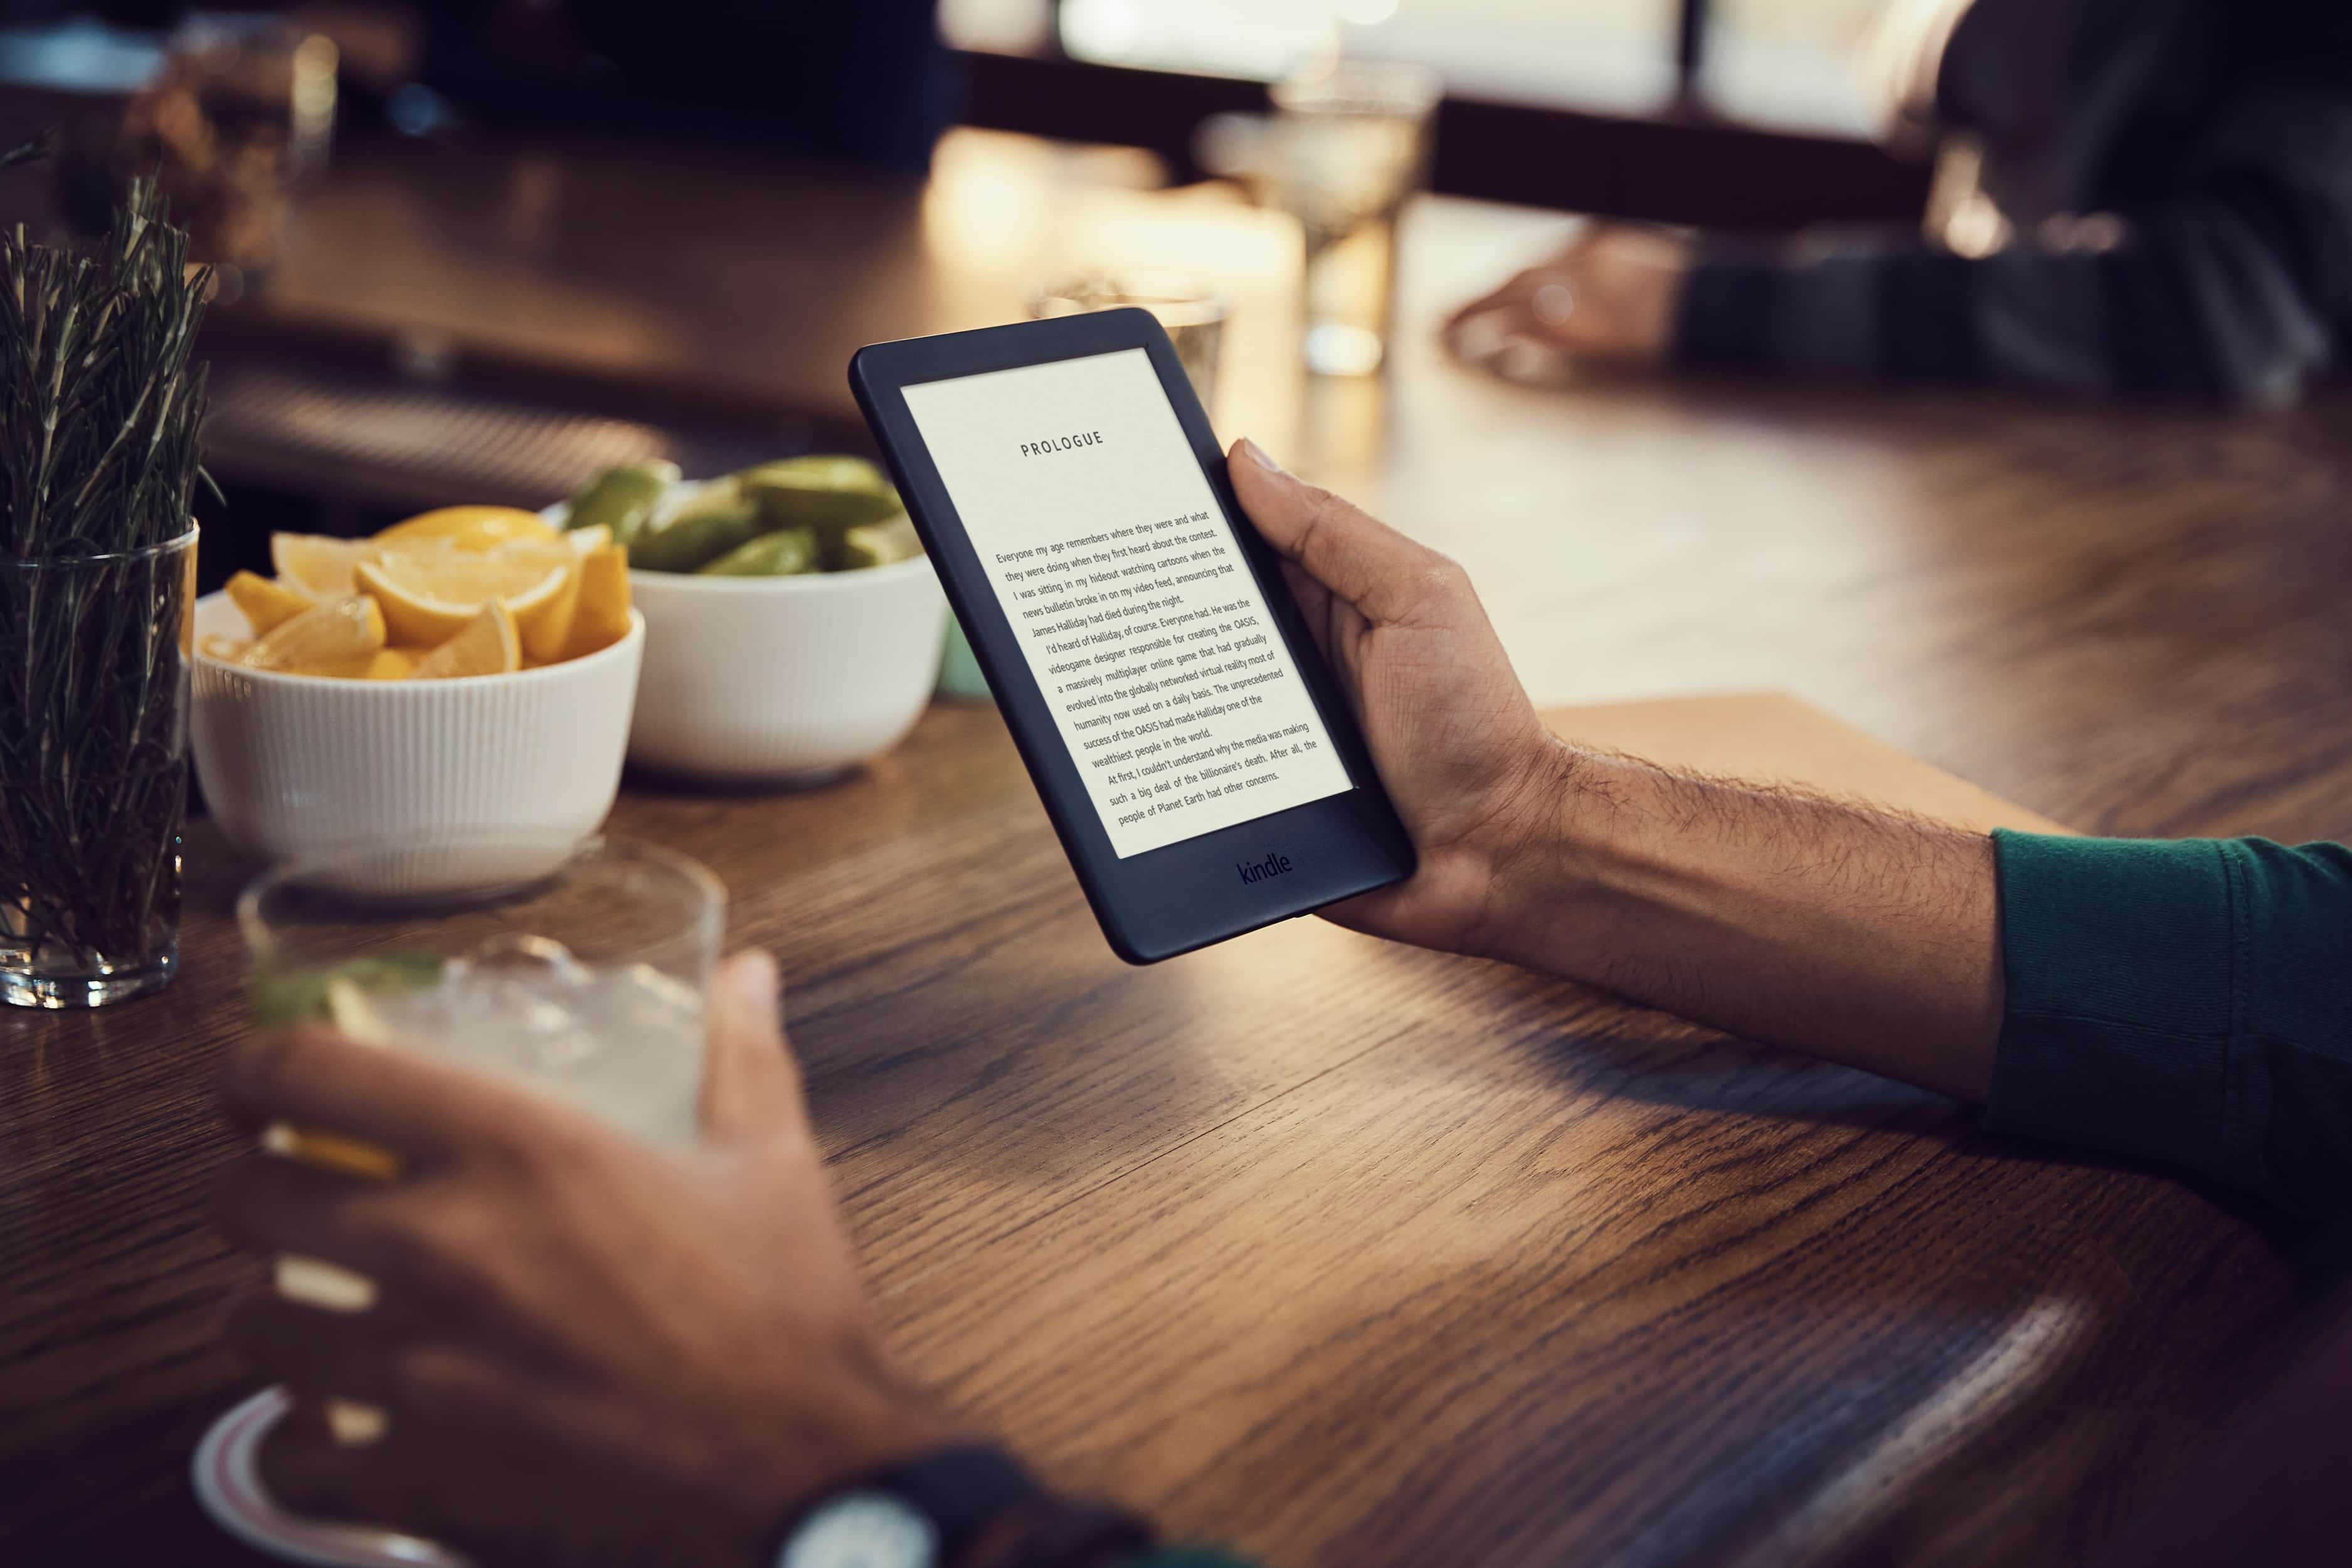 Kindle (2019) Has a Frontlight, Costs $89, and is a Terrible